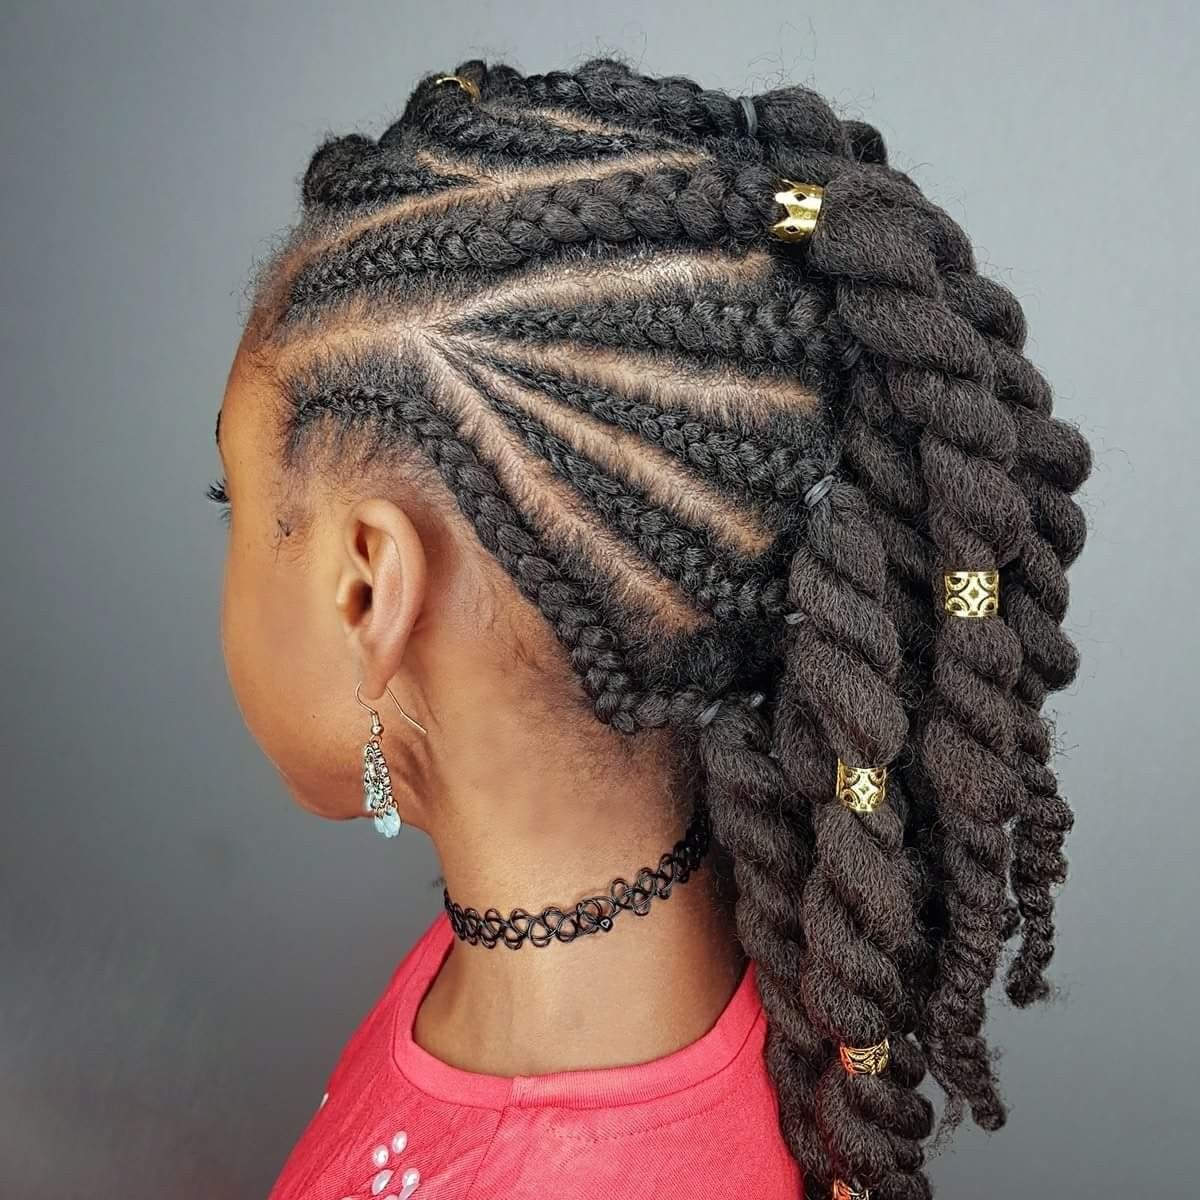 Side Braids Twists Hairstyles For Black Girls Natural Hairstyles For Kids Kids Braided Hairstyles Black Kids Hairstyles